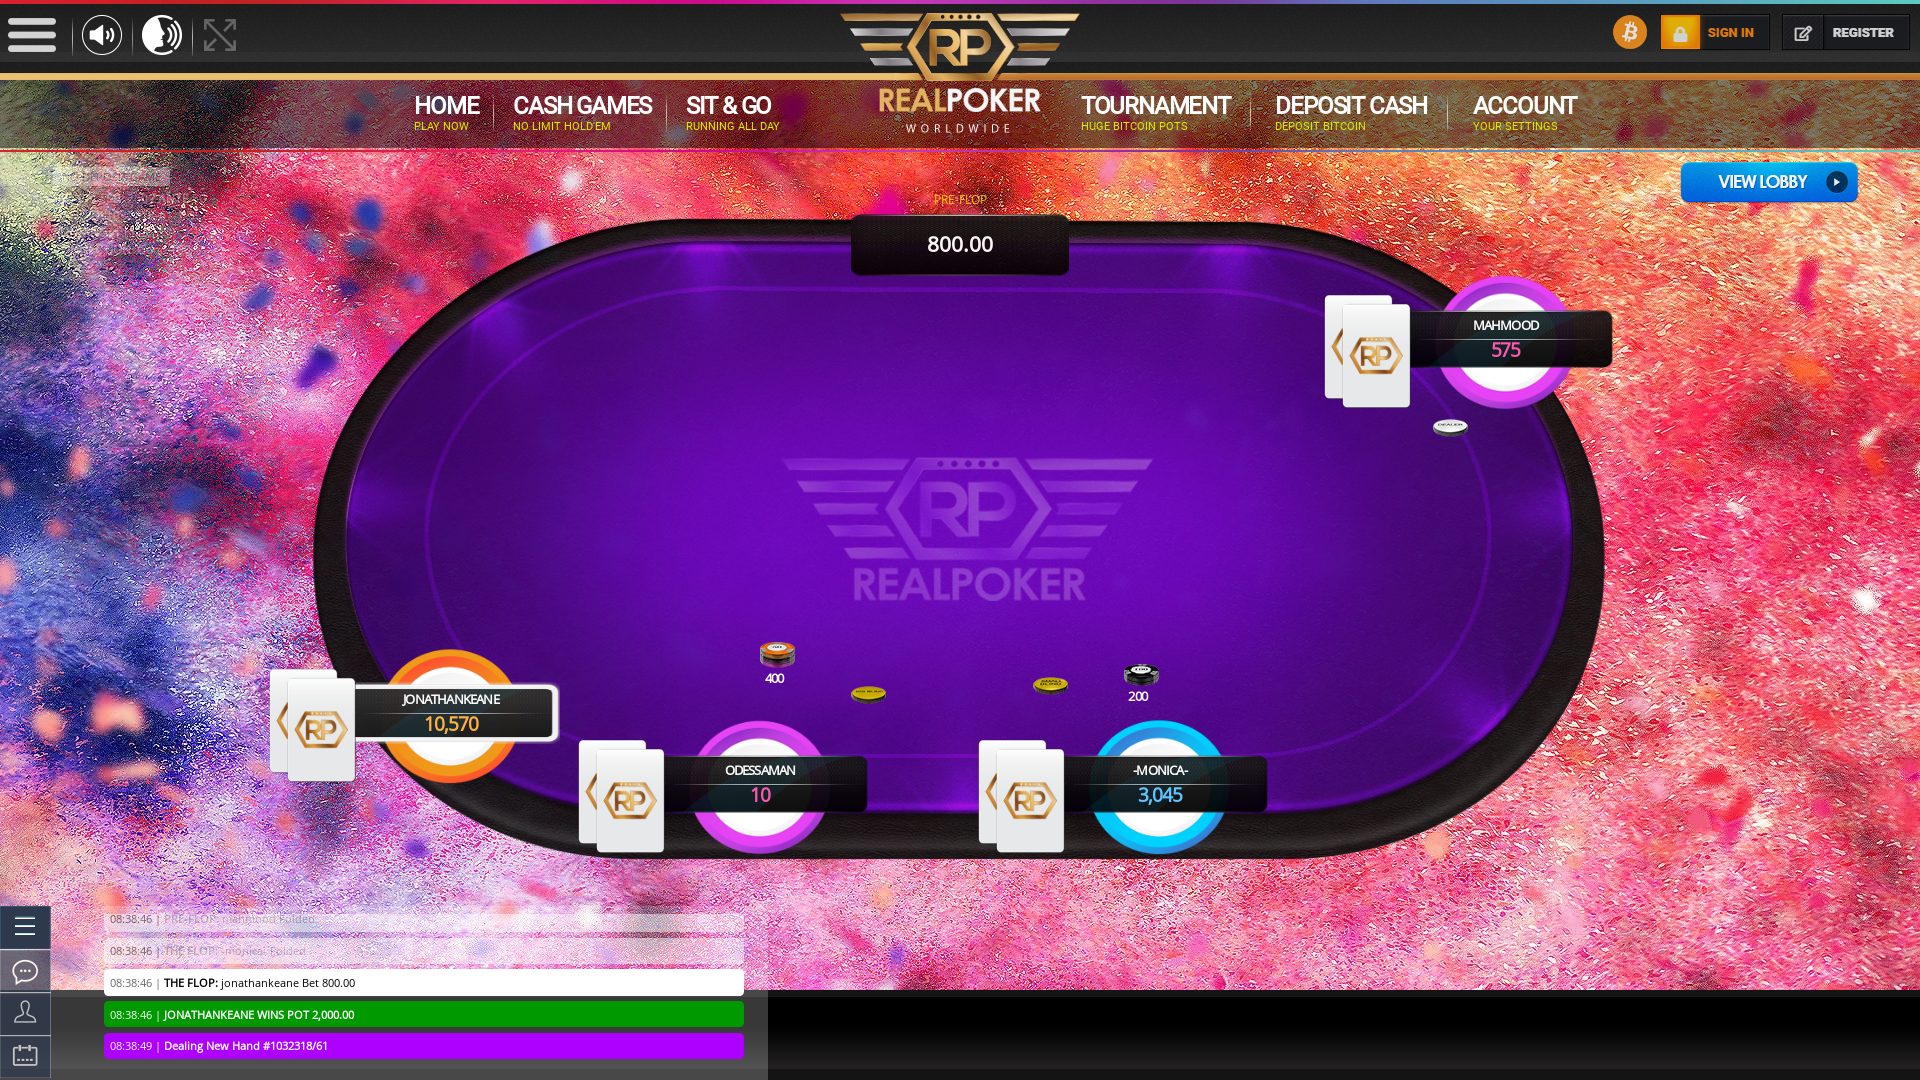 Online poker on a 10 player table in the 61st minute match up